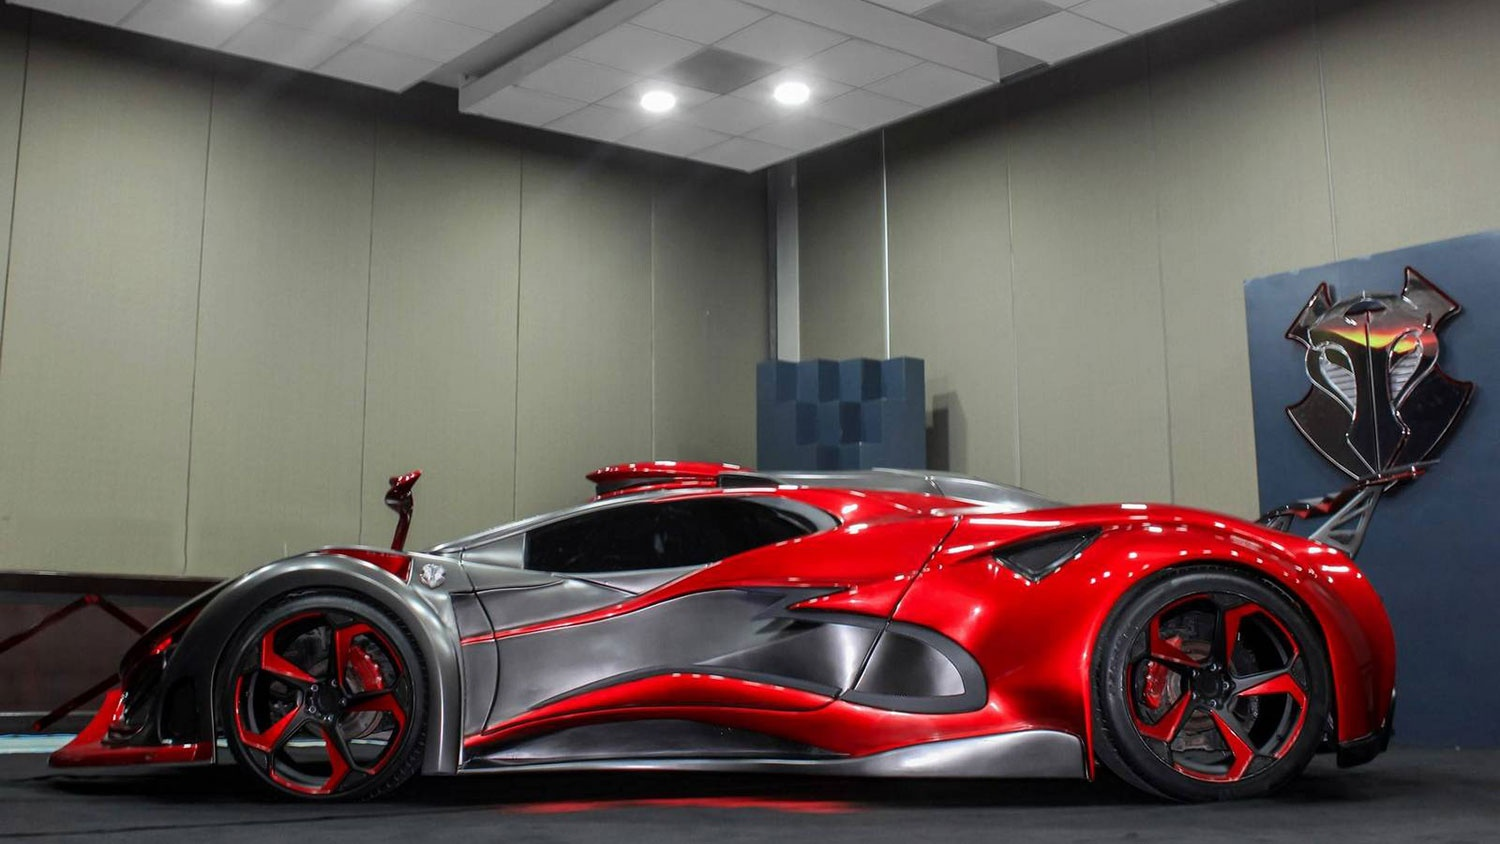 mexico s latest supercar is the inferno with stretchable metal daily rubber inferno with stretchable metal